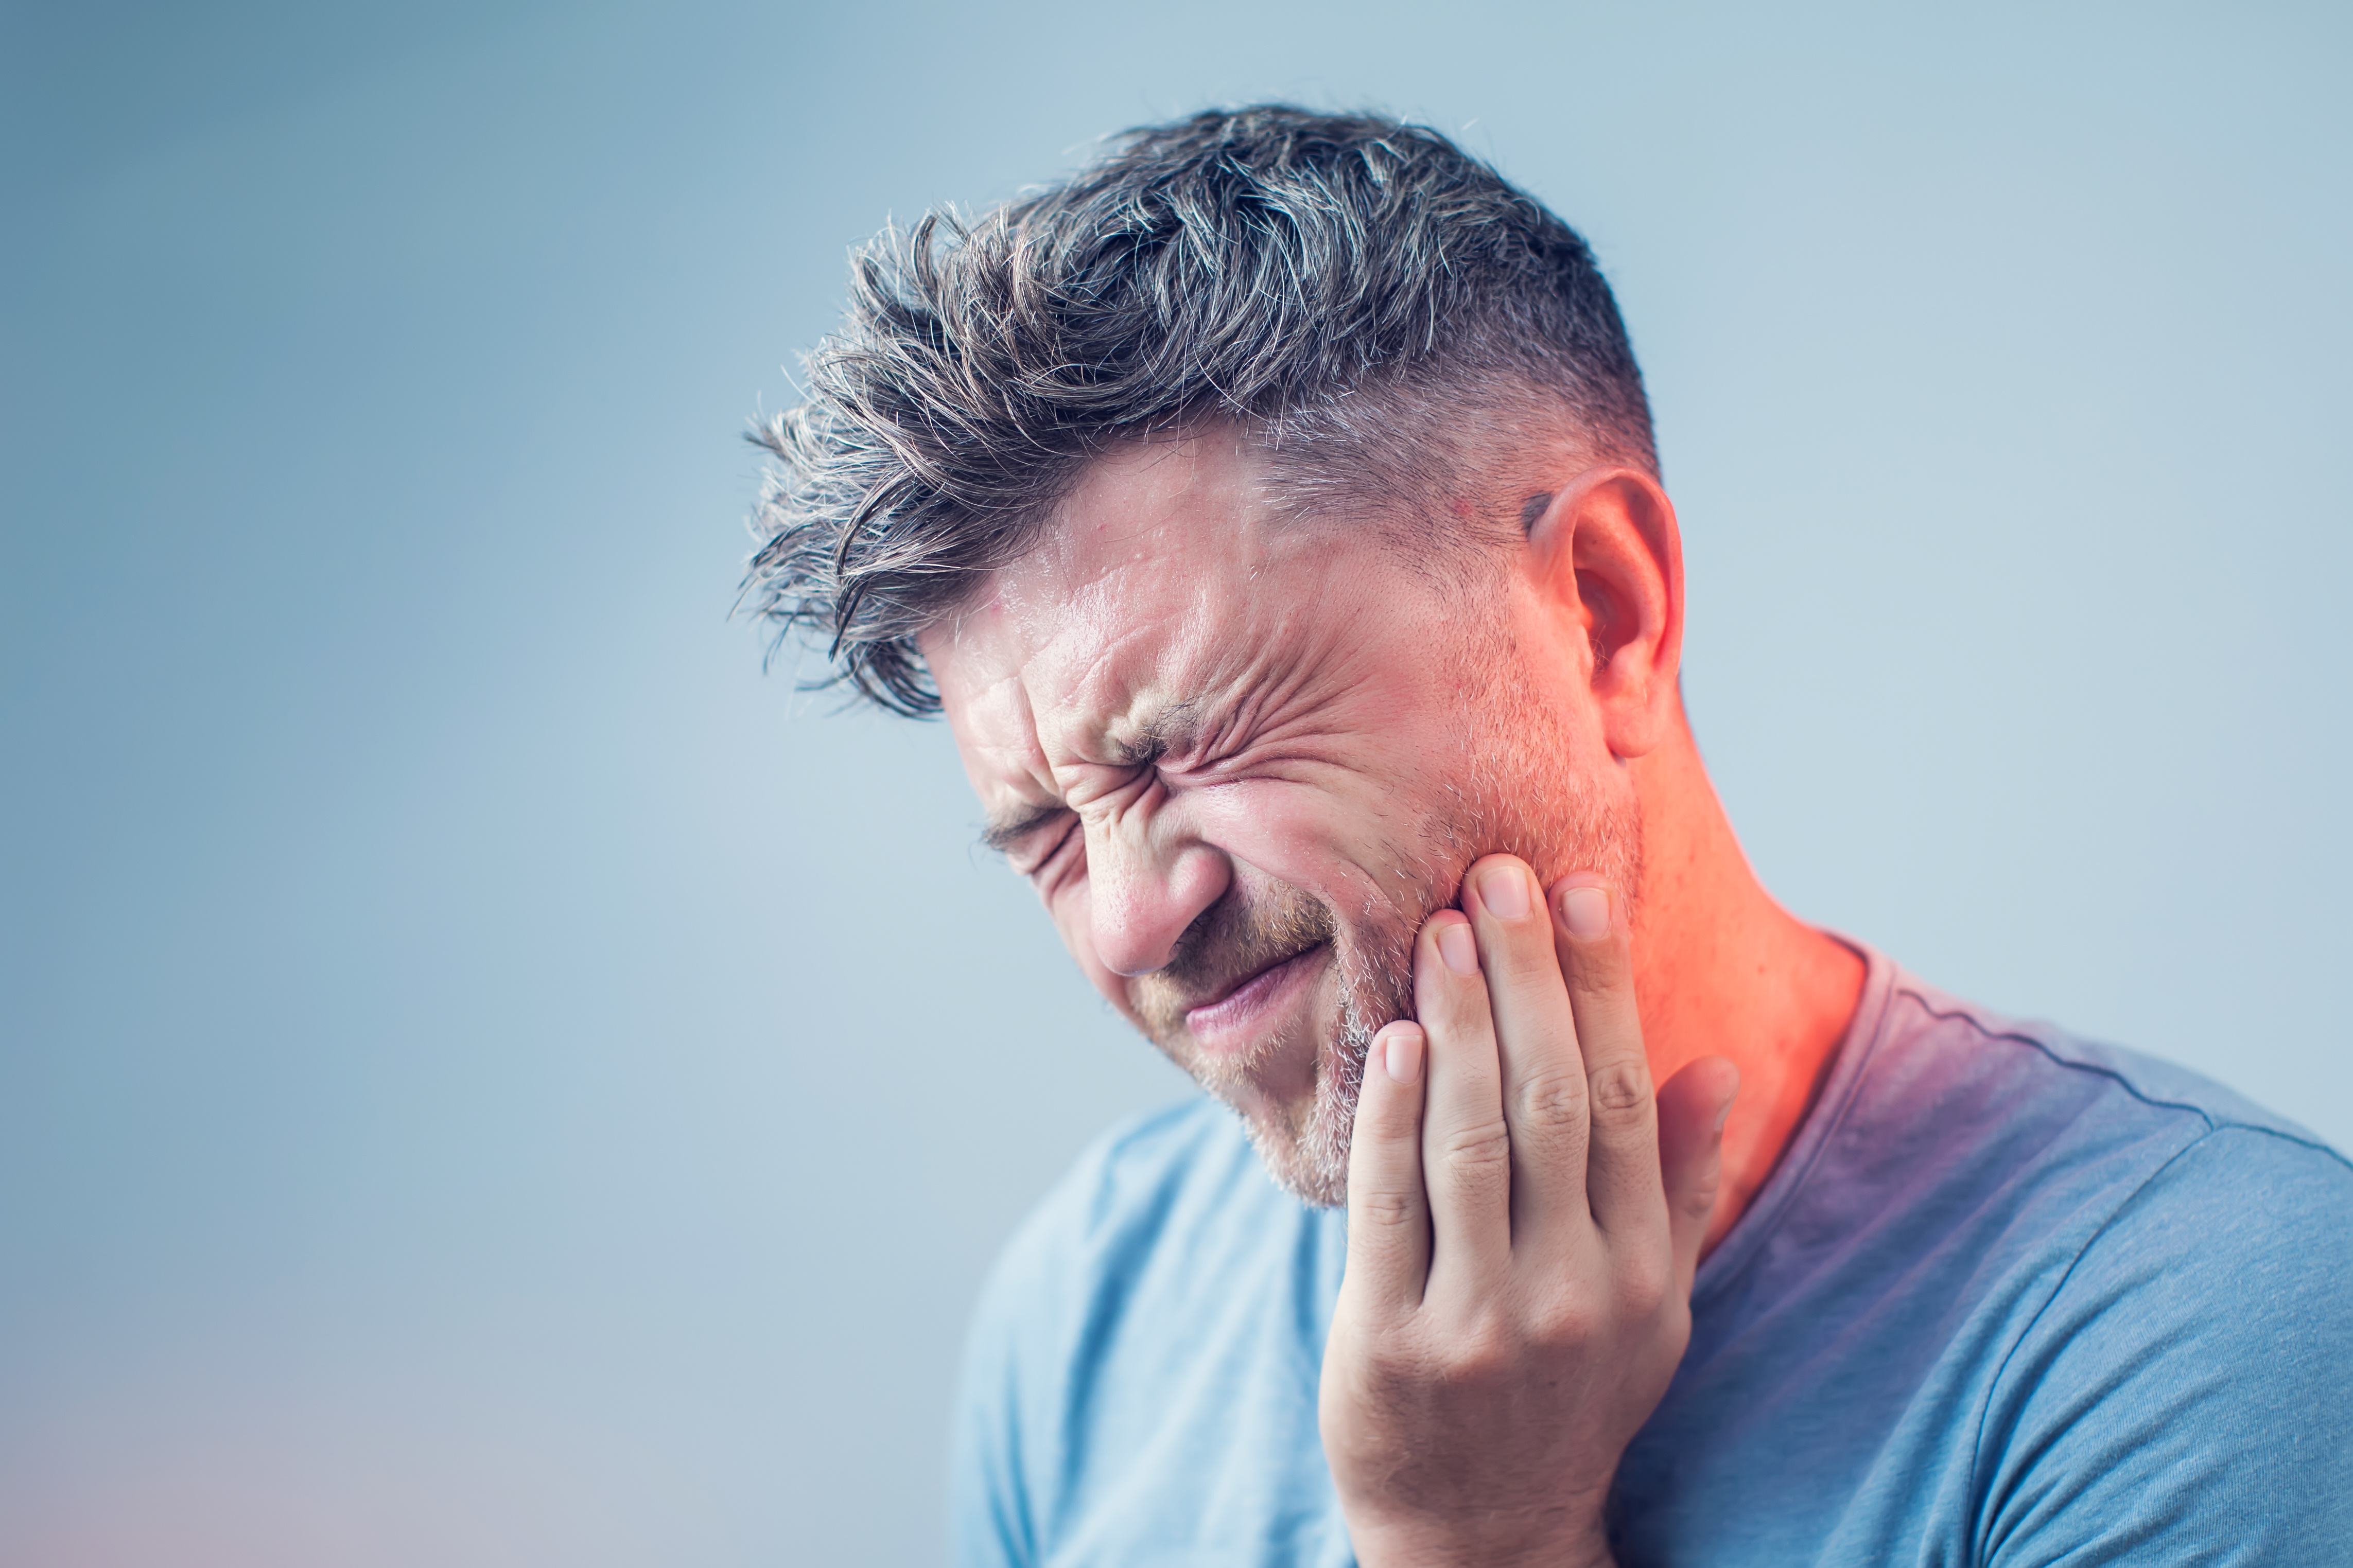 man experiencing severe tooth pain requiring emergency dental assistance